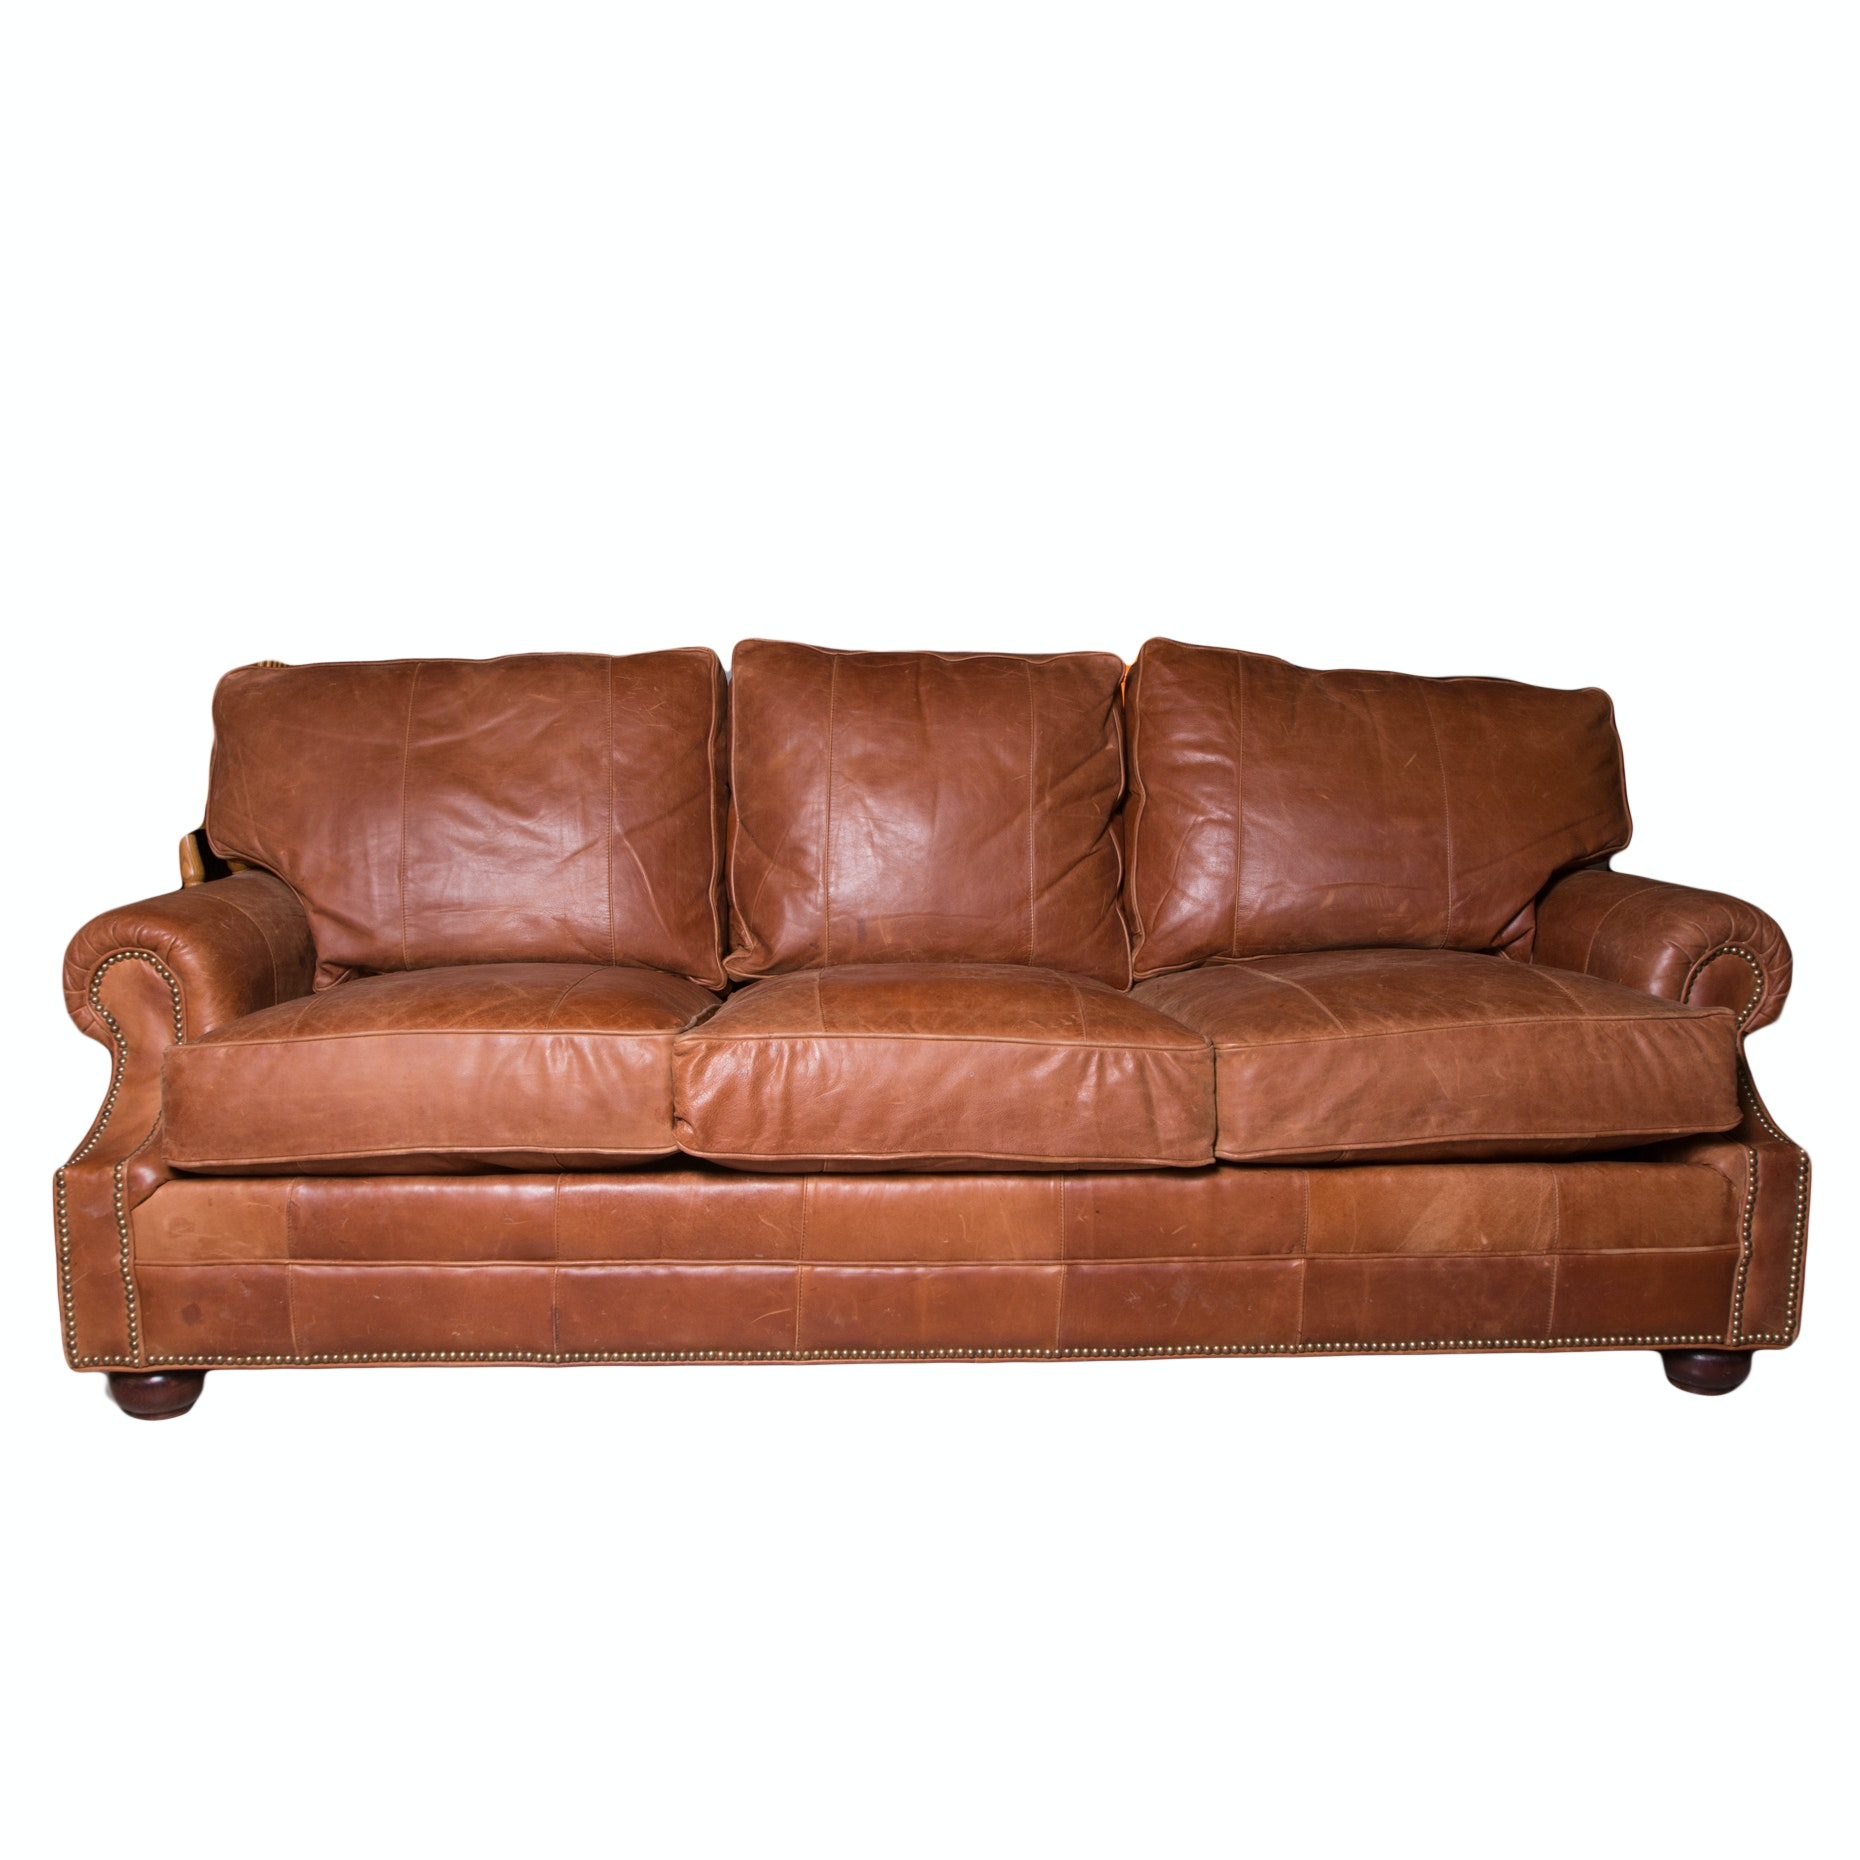 Lexington Furniture Cognac Leather Couch ...